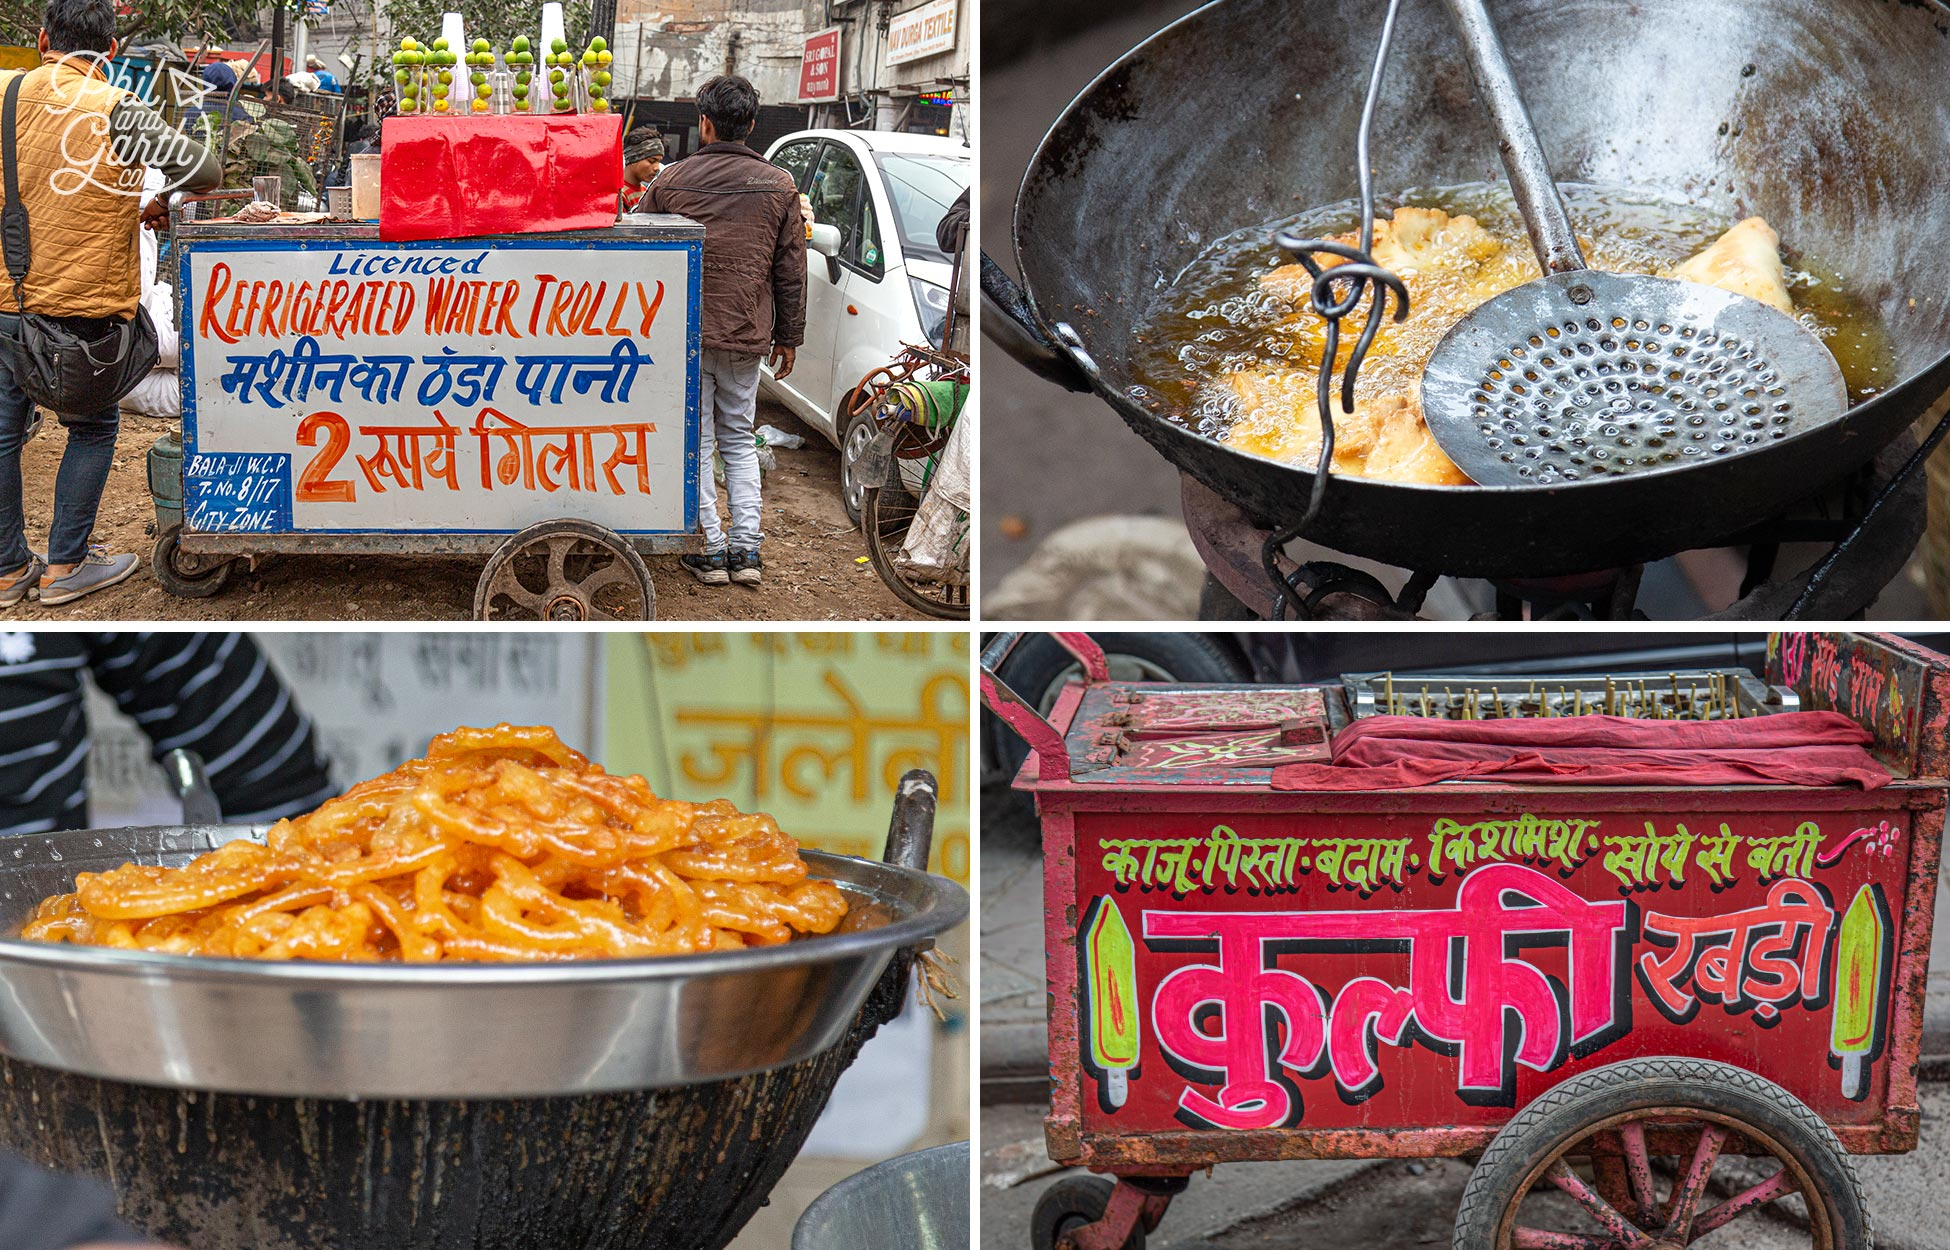 Only eat street food that's hot and cooked fresh in front of you